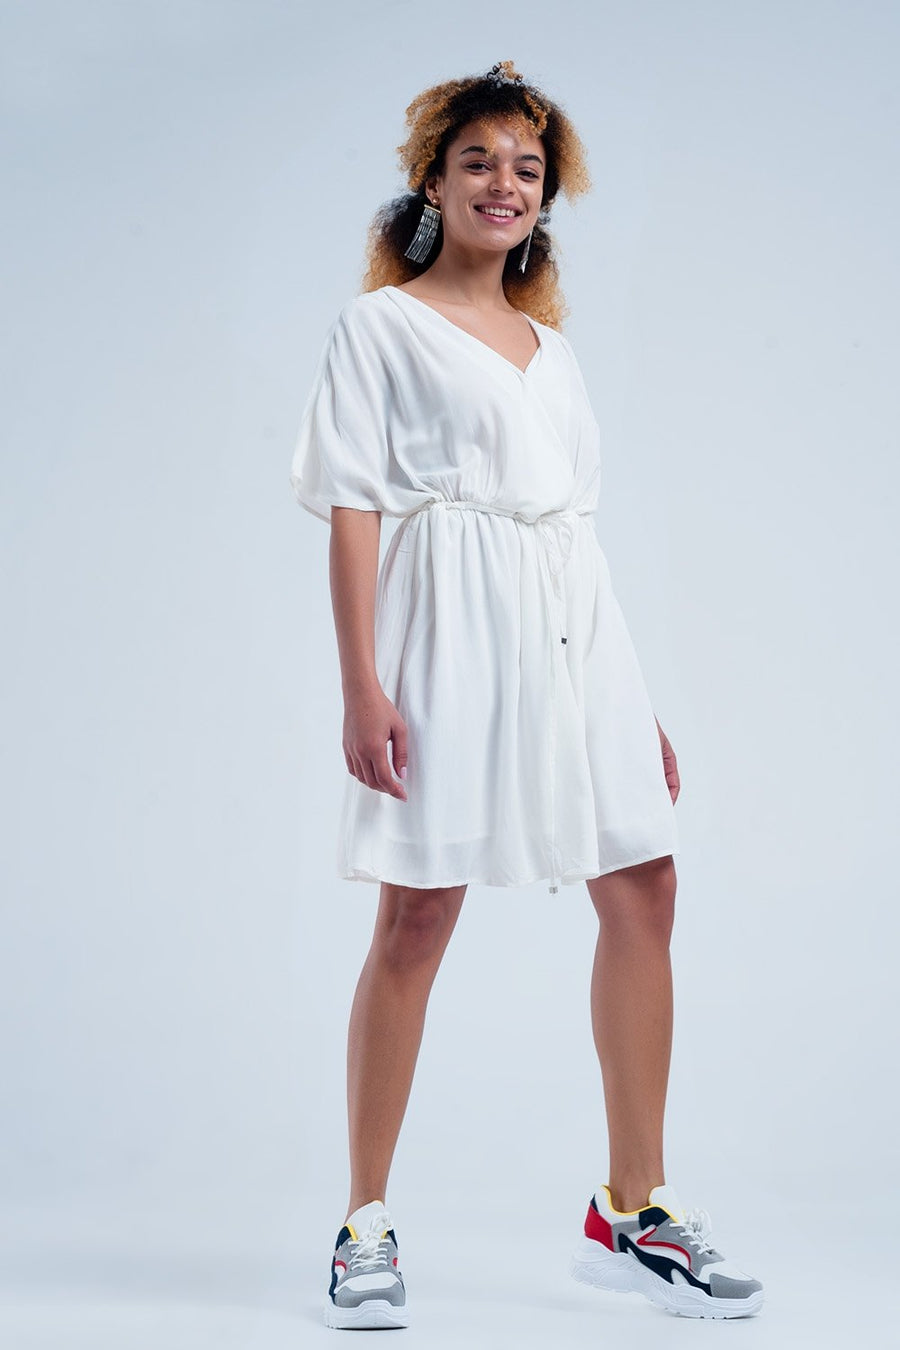 Tie waist midi dress in white Women - Apparel - Dresses - Casual Tigerlily and Me